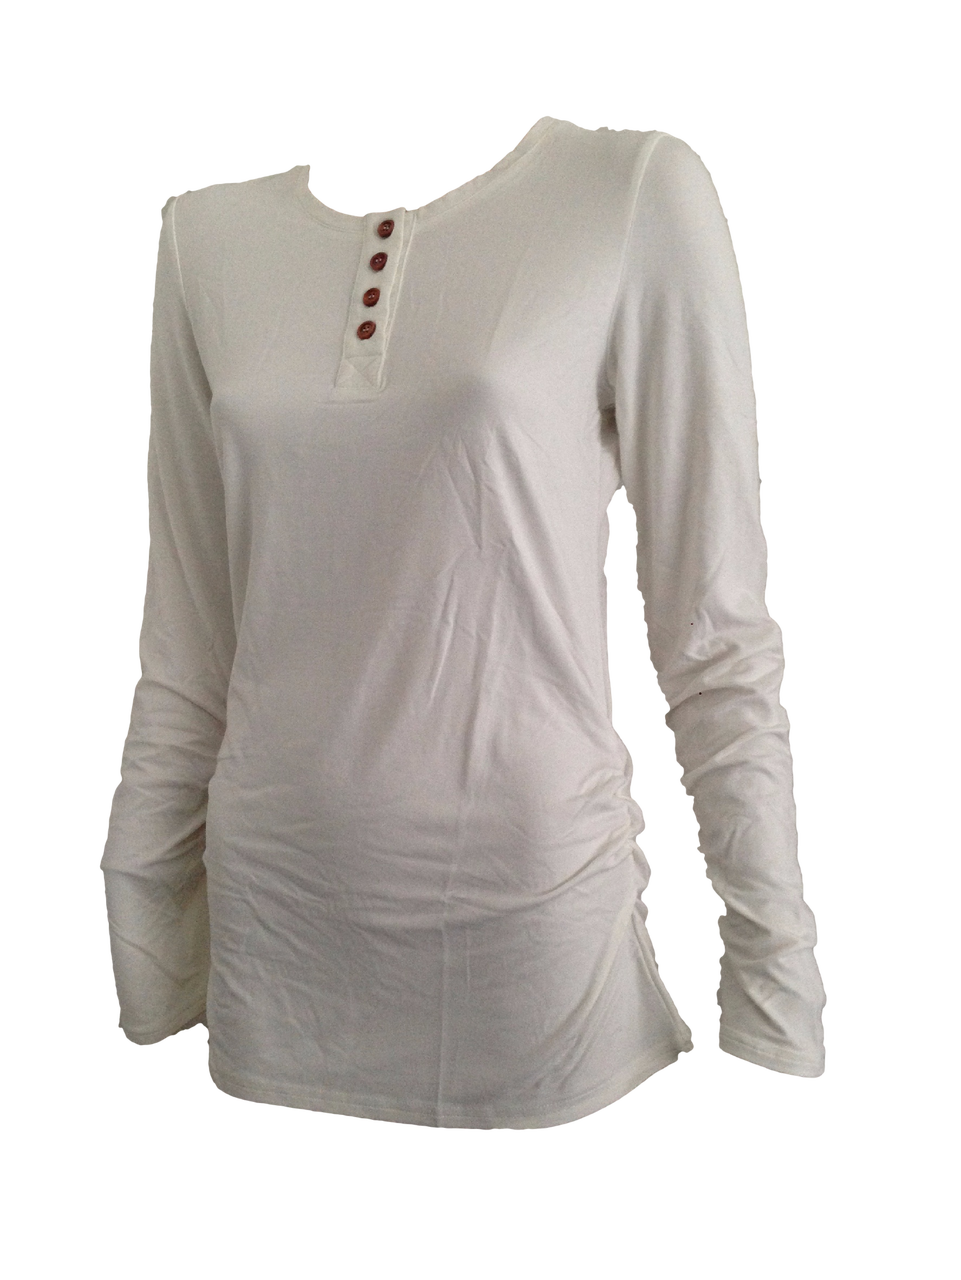 Home Women's Clothing For Everyday Women's 'Tirril' Henley Top